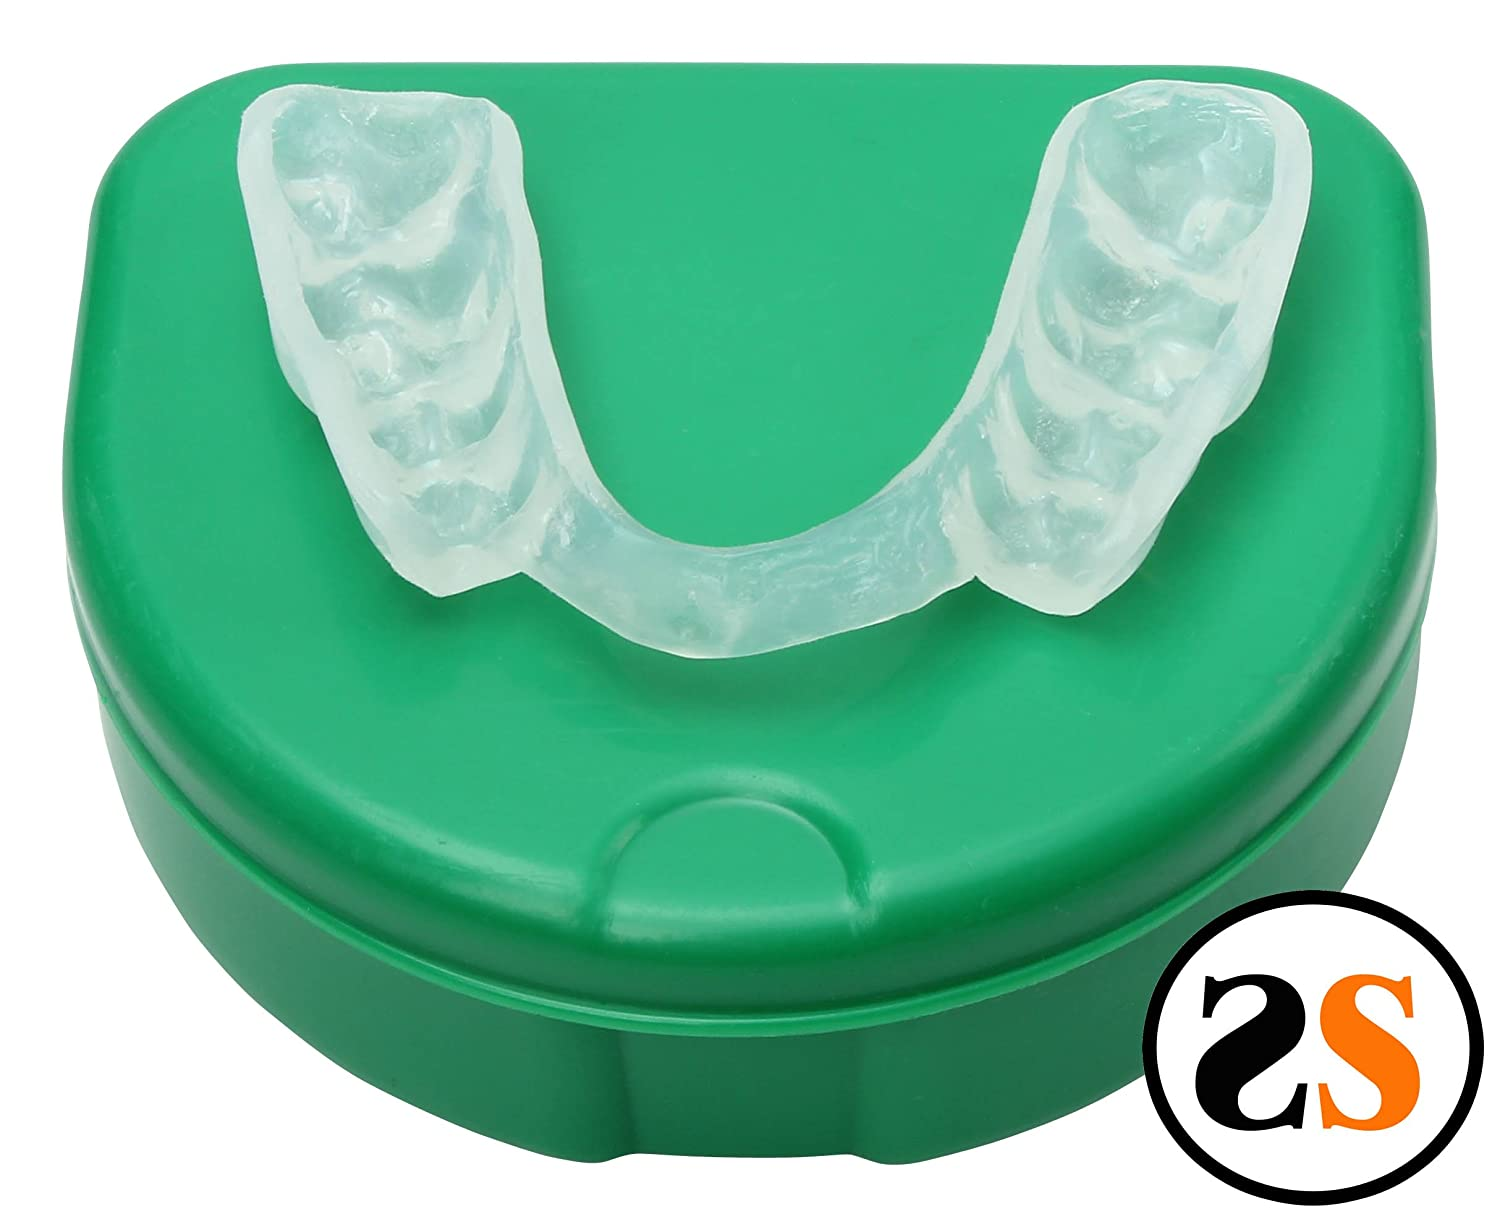 Custom Flexible Super Hard Dental Teeth Night Guard Back Cut 71PjQwUNdvL._SL1500_